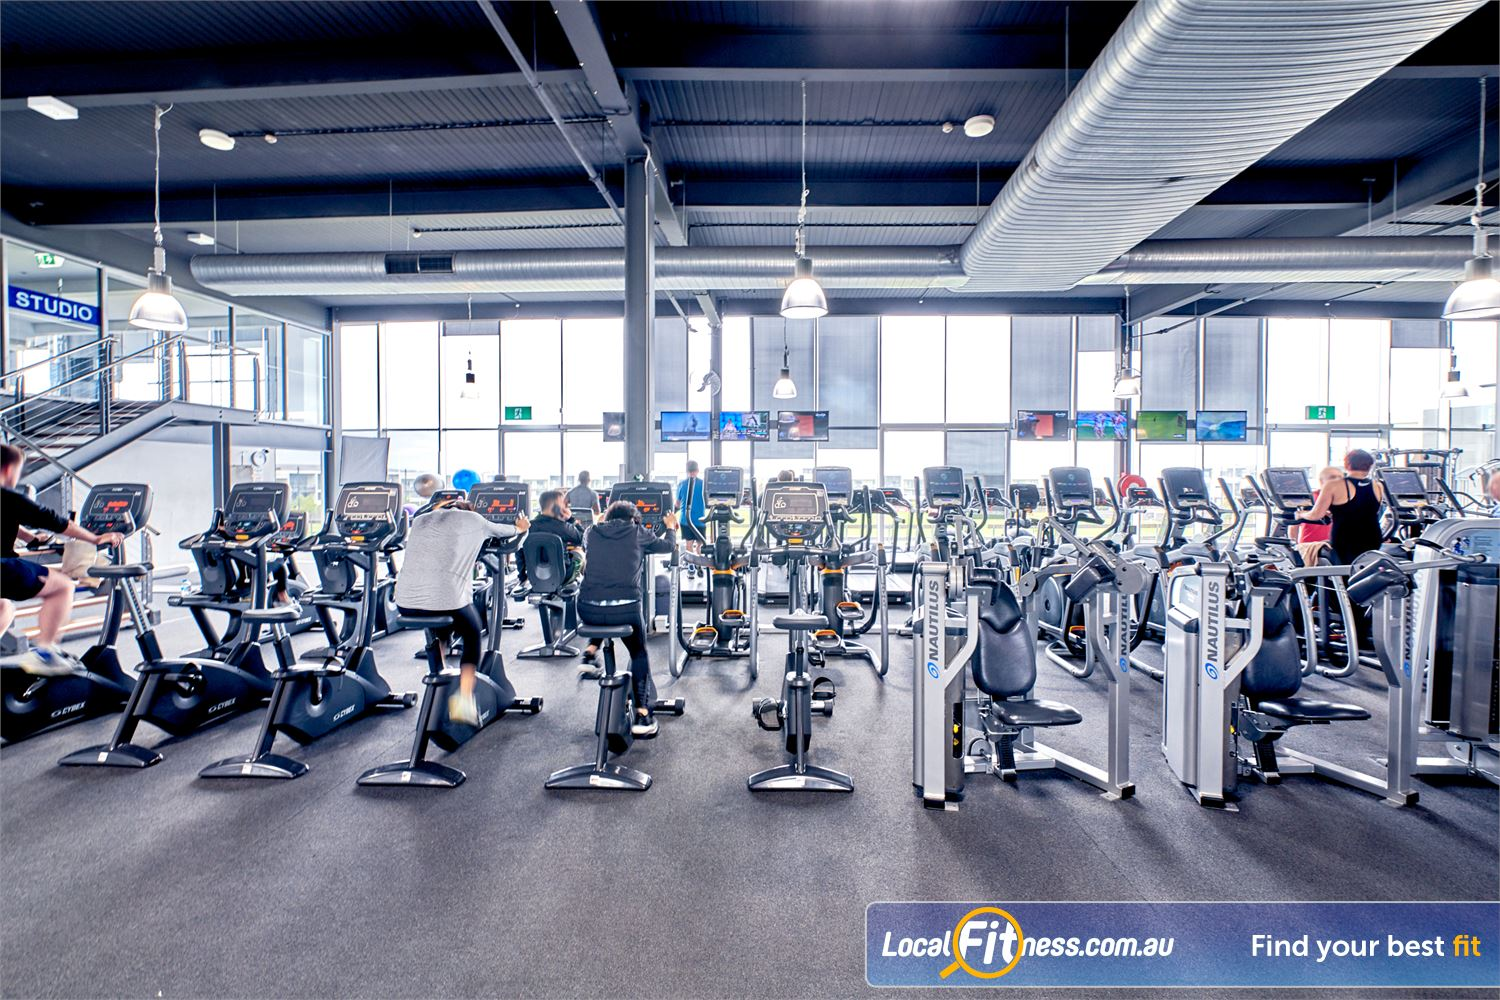 Goodlife Health Clubs Waverley Park Mulgrave Full range of cardio machines inc. treadmills, cycle bikes, cross-trainers and more.